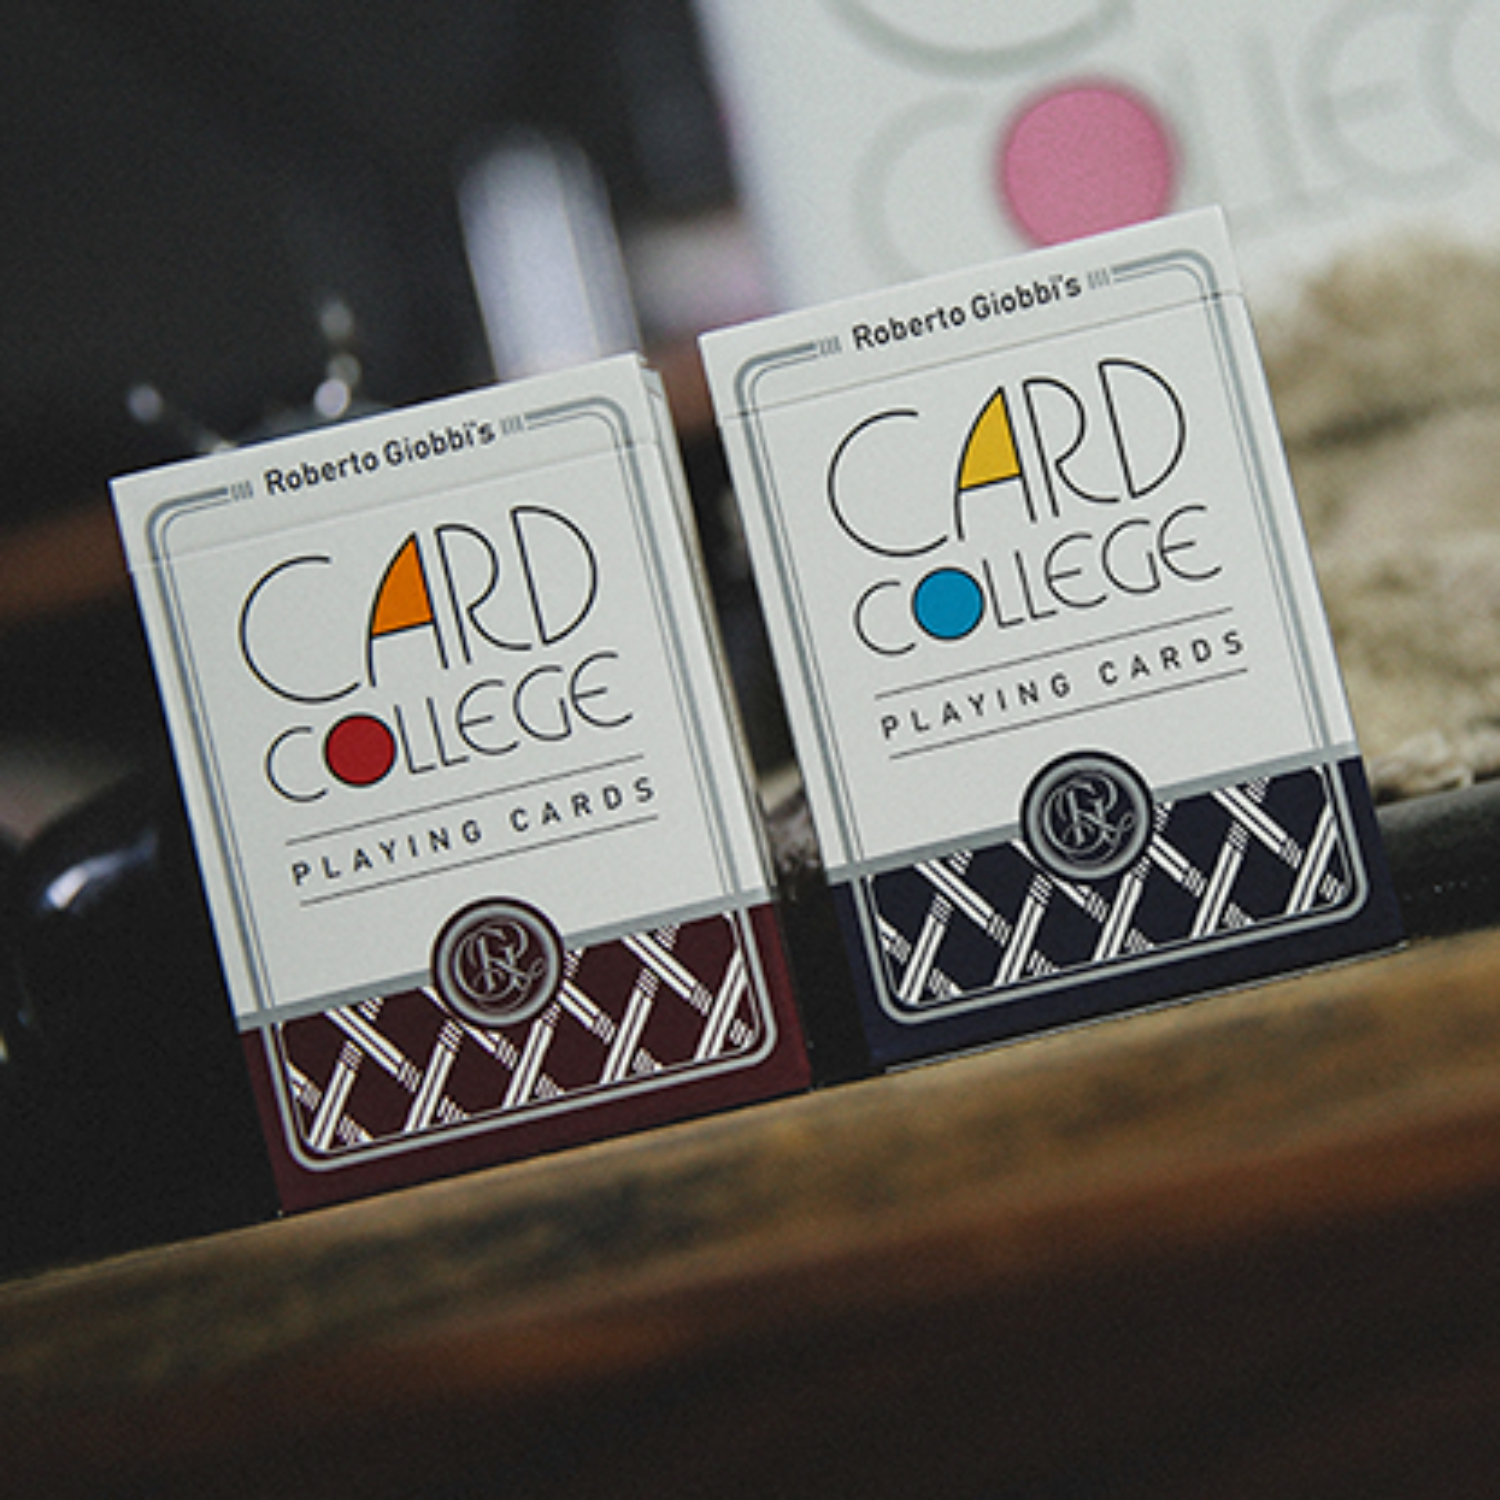 [카드컬리지/레드]Card College (Red) Playing Cards by Robert Giobbi and TCC Presents